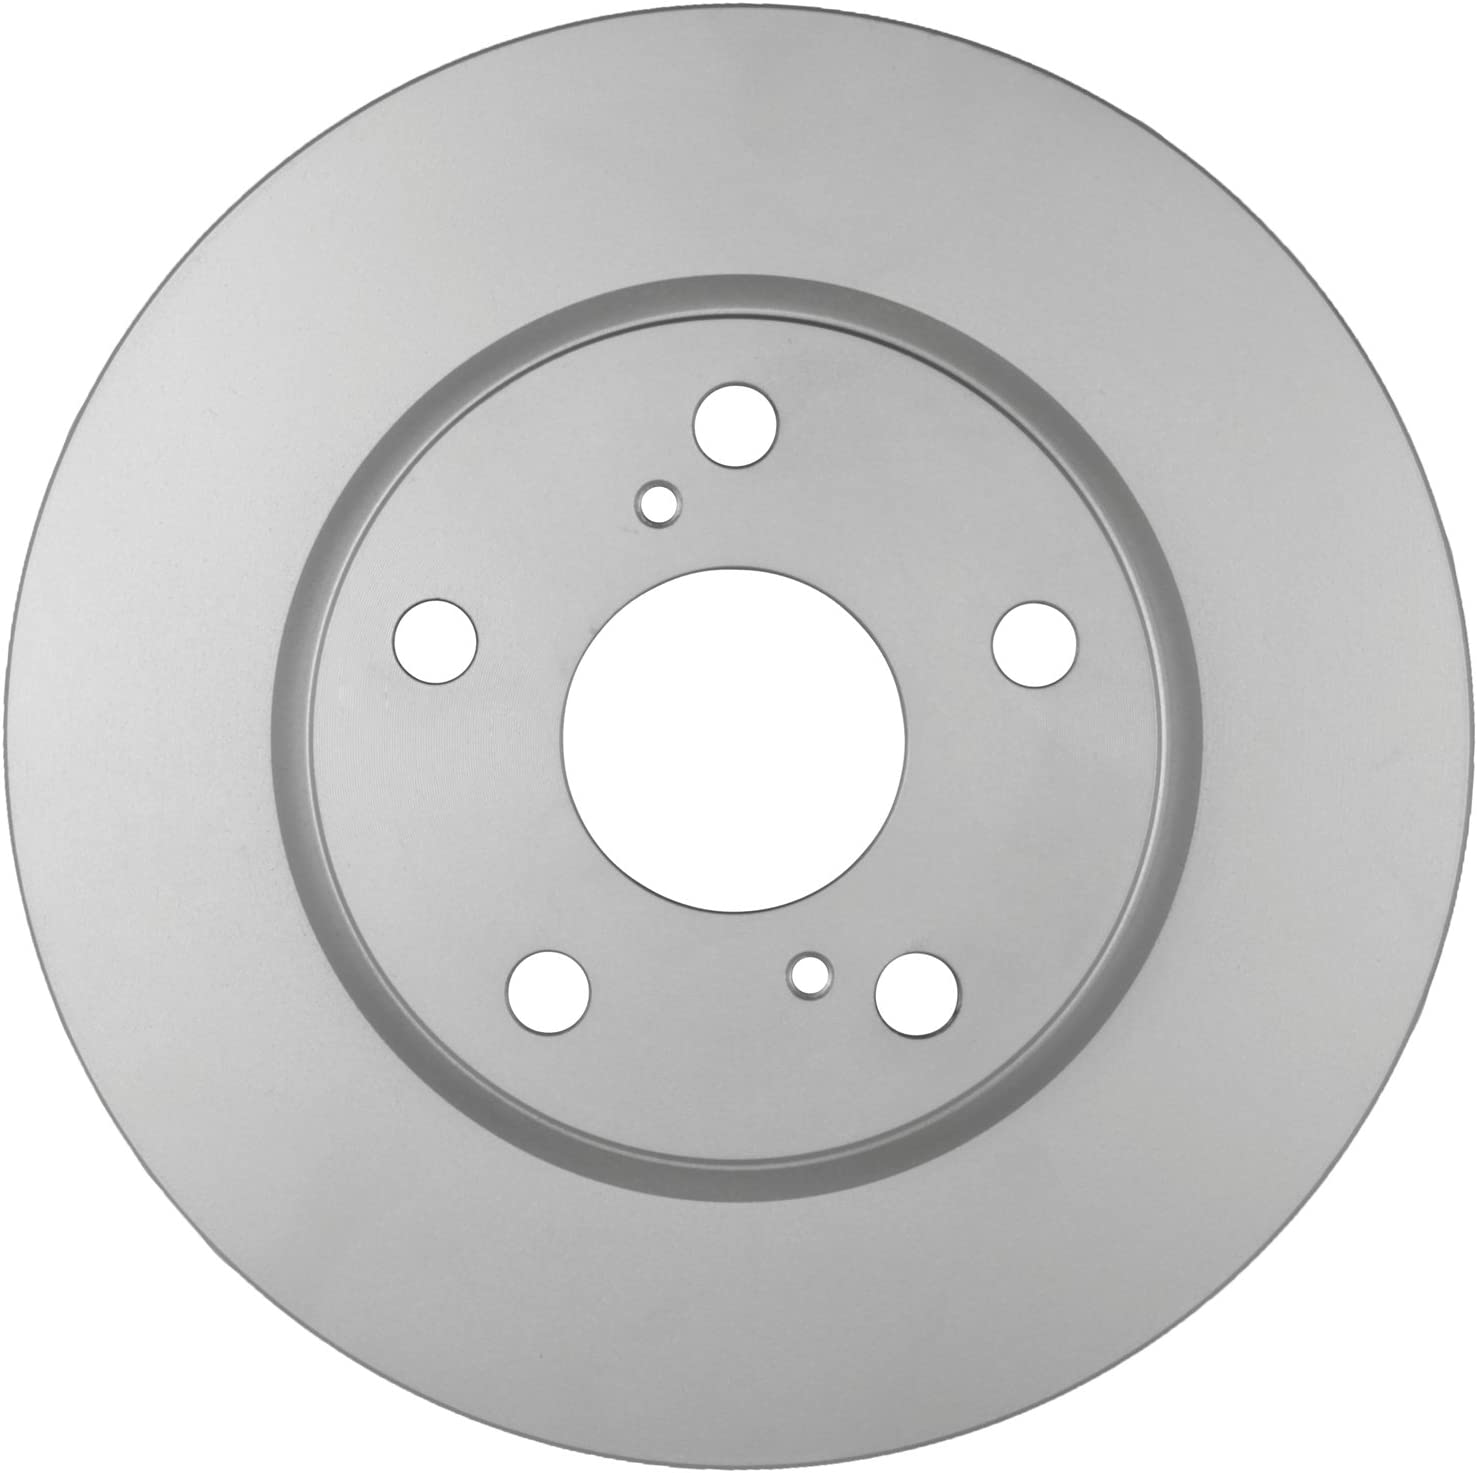 Bosch 50011309 QuietCast Recommended Premium Disc Rotor Brake 201 Cheap mail order specialty store Lexus: For